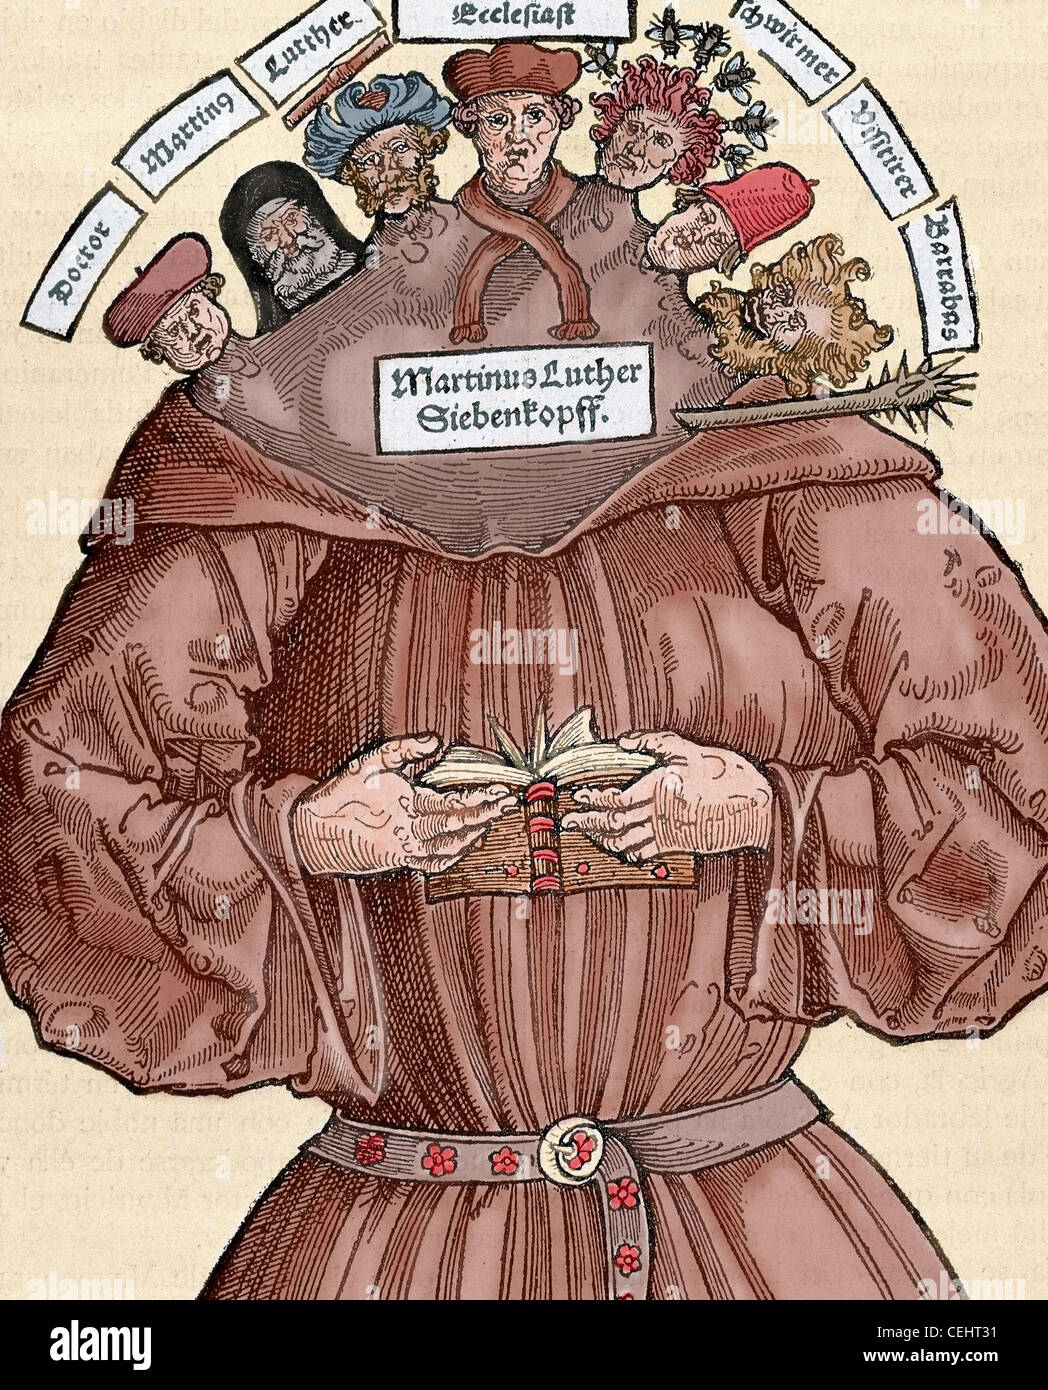 Protestant Reformation. 16th century. Germany. Satire against Martin Luther  (1483-1546). Colored engraving.